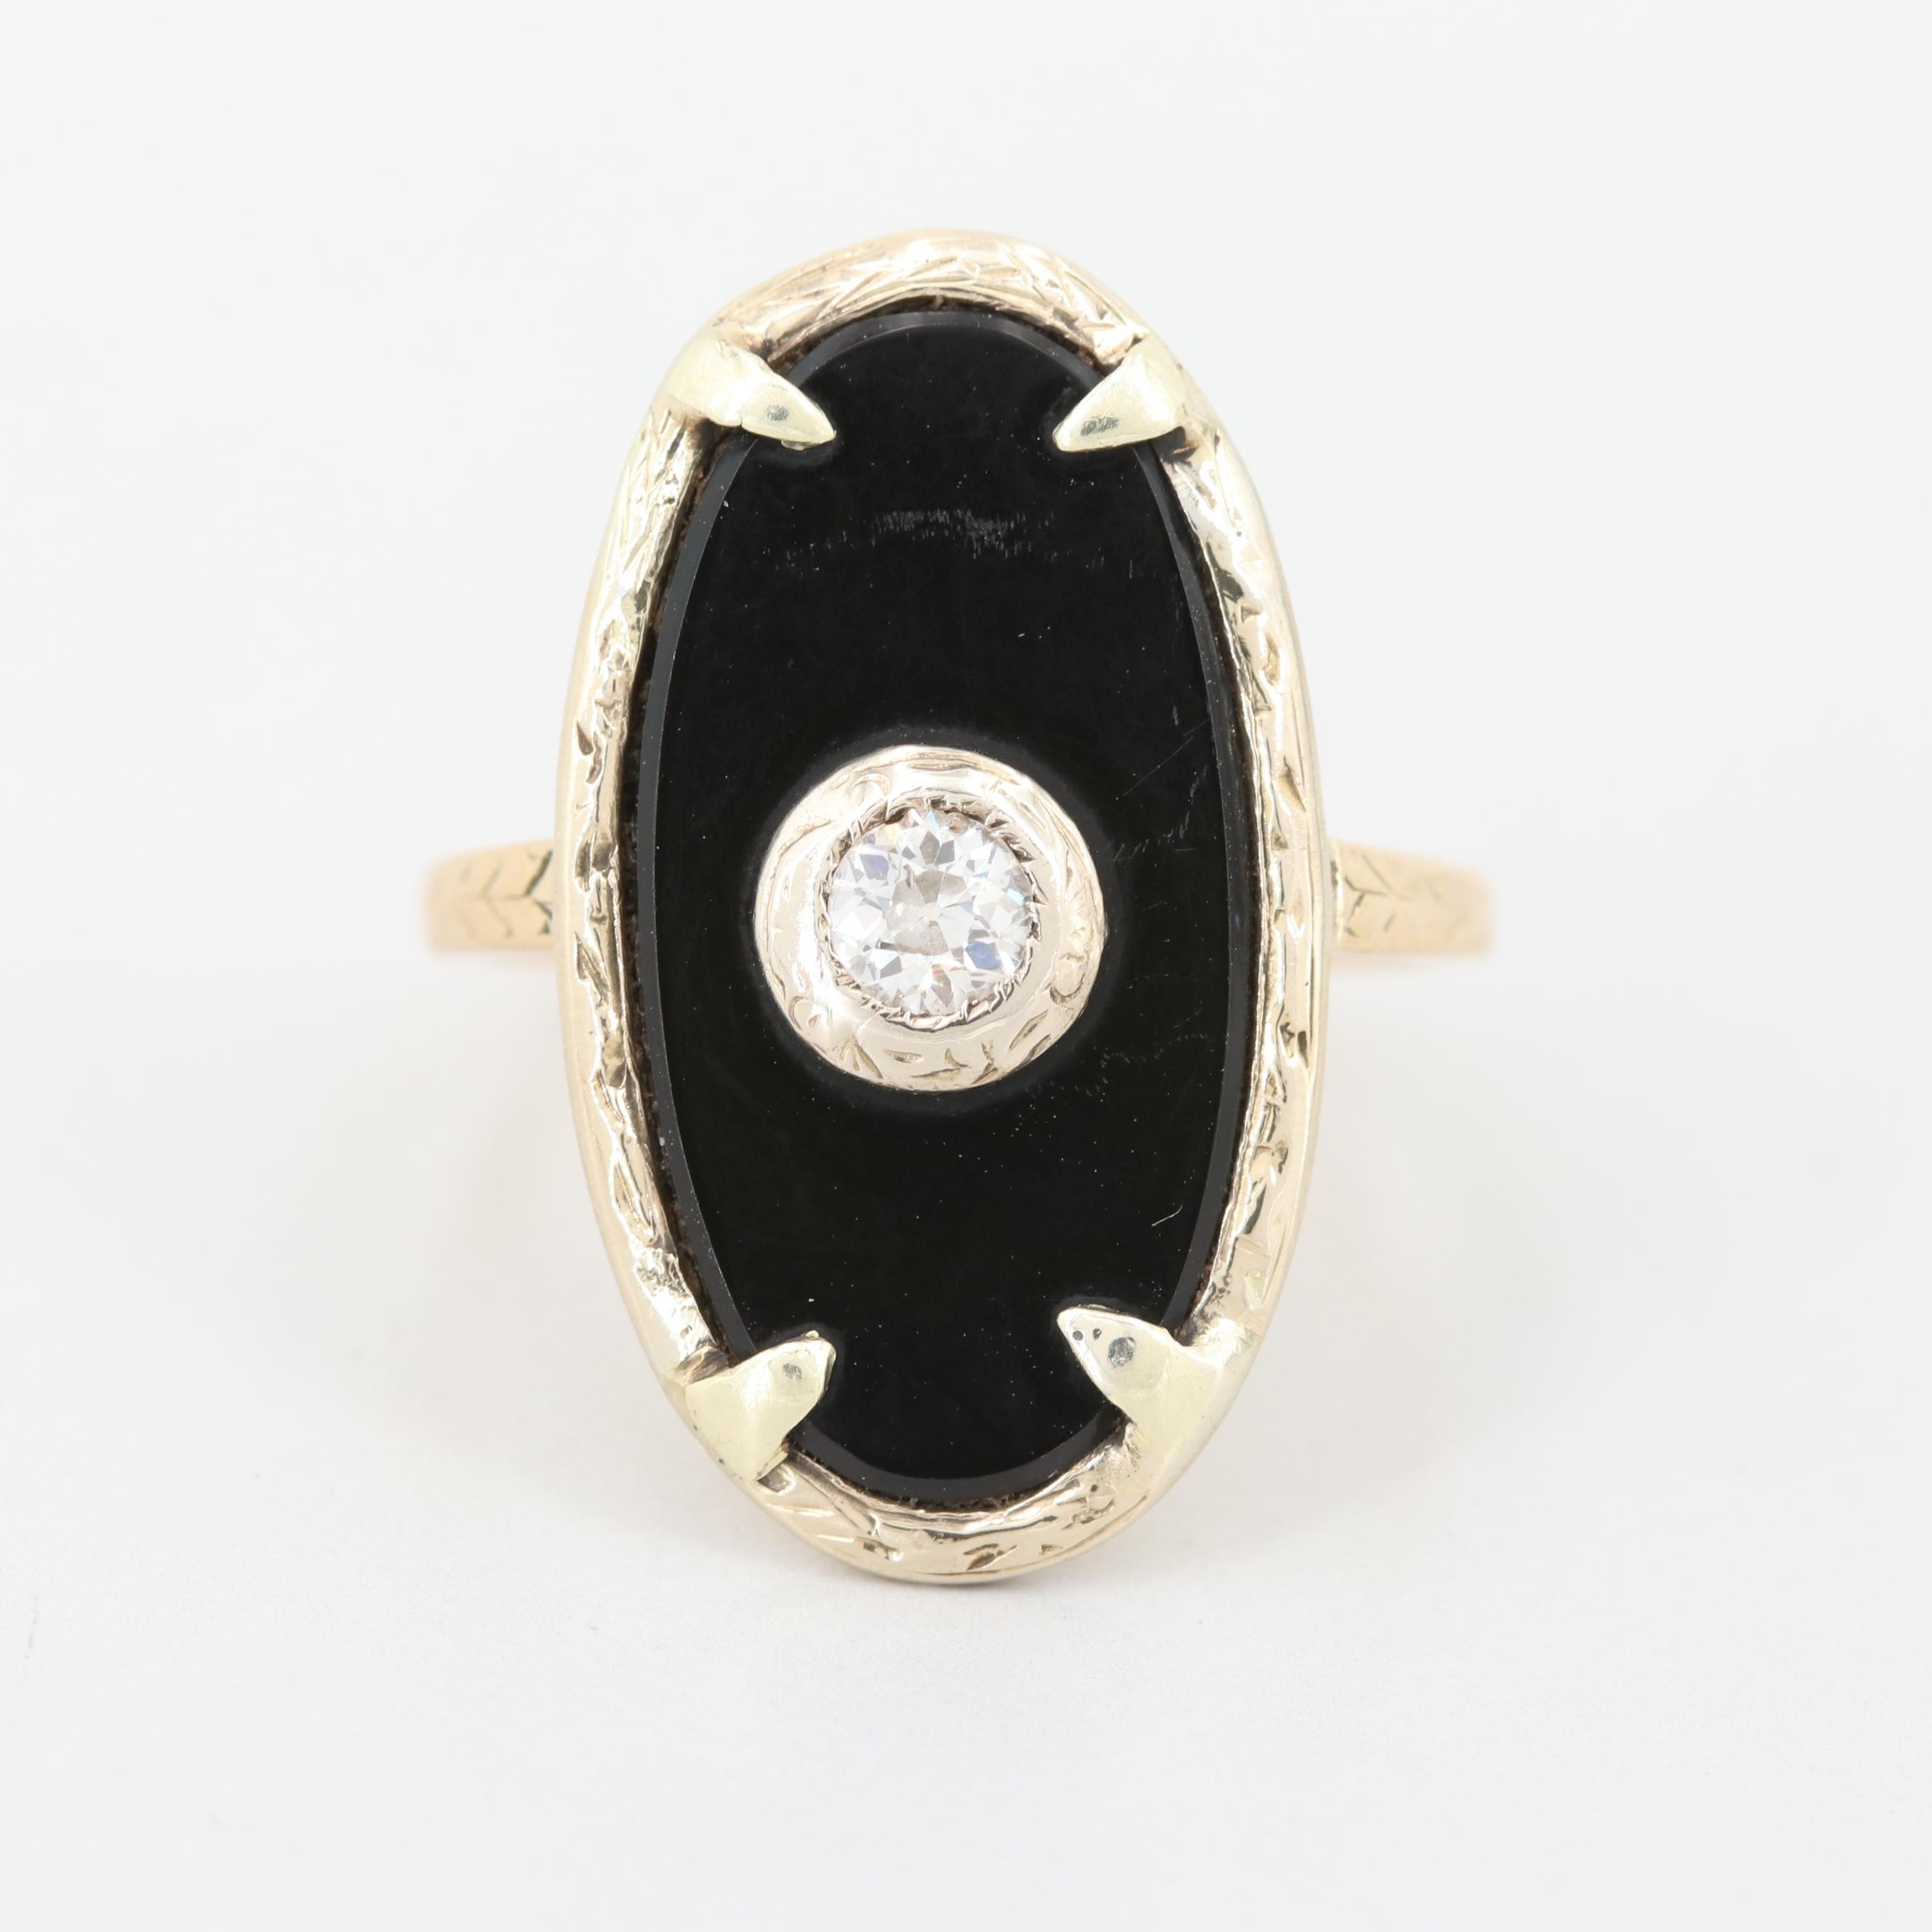 Circa 1900 14K Yellow Gold Diamond and Black Onyx Ring